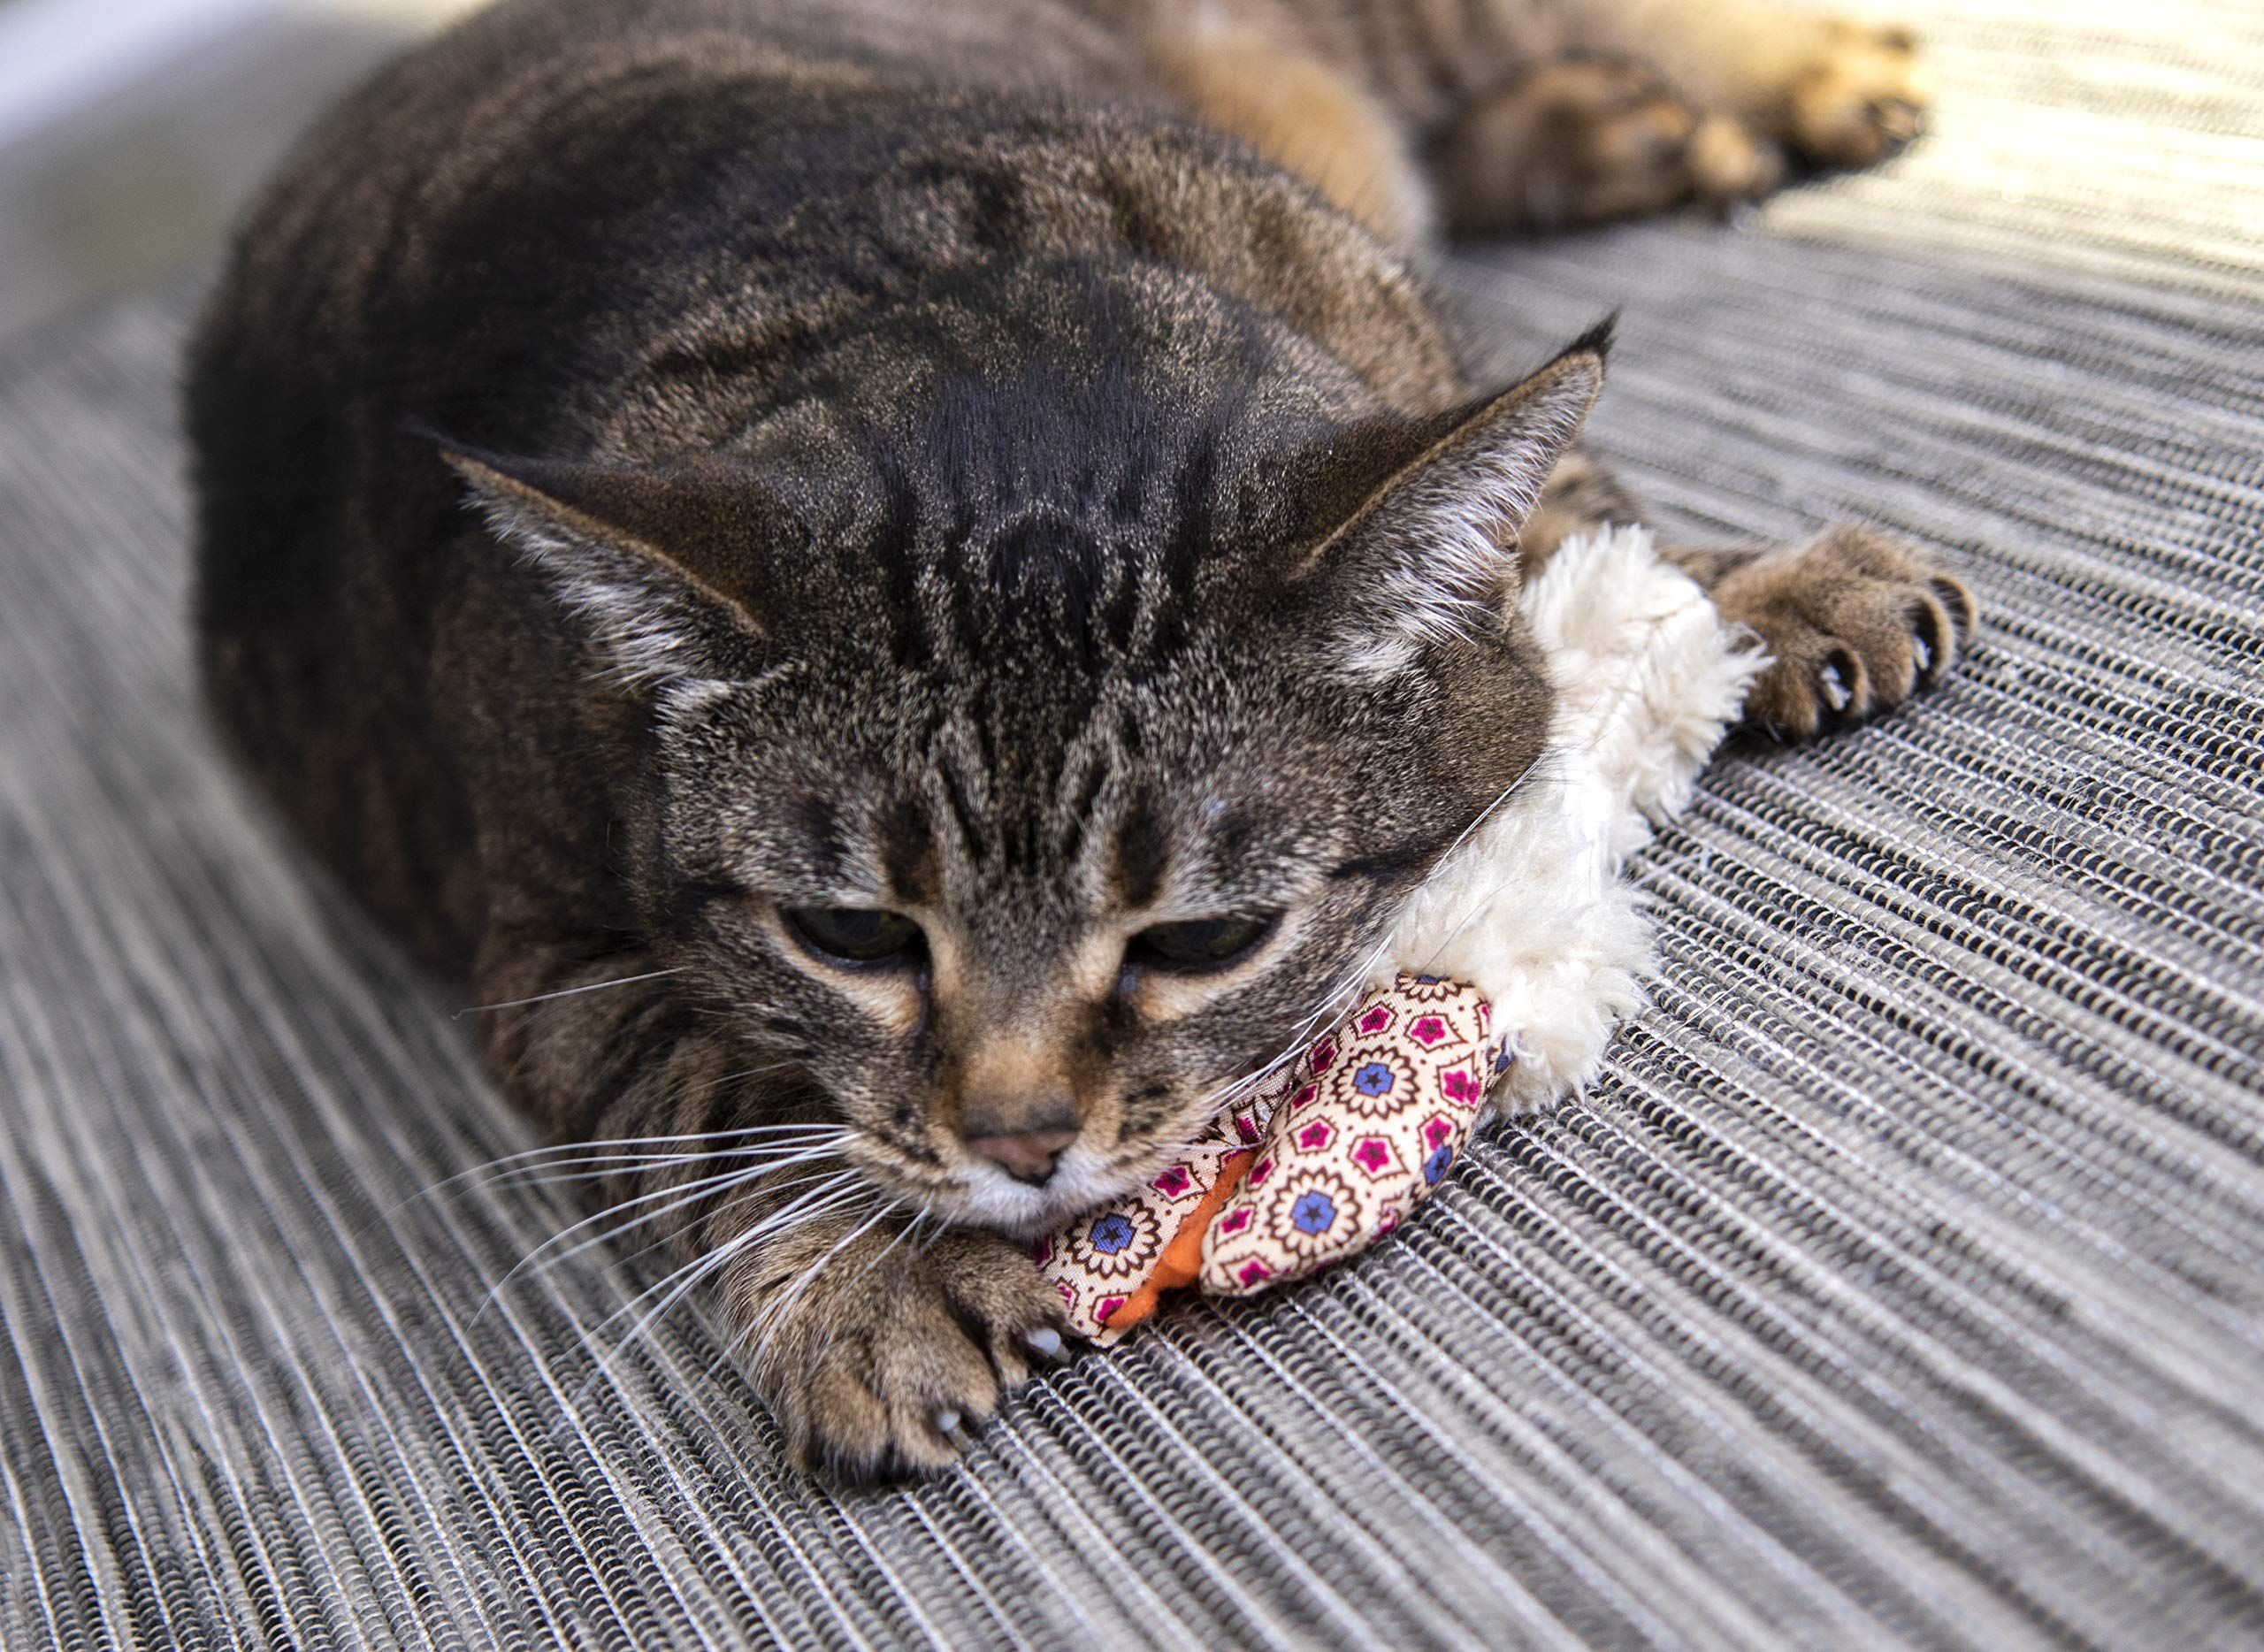 Petlinks Refillable Catnip Cat Toys Ad Refillable Sponsored Petlinks Catnip Toys Catnip Cat Toy Cat Toys Cats